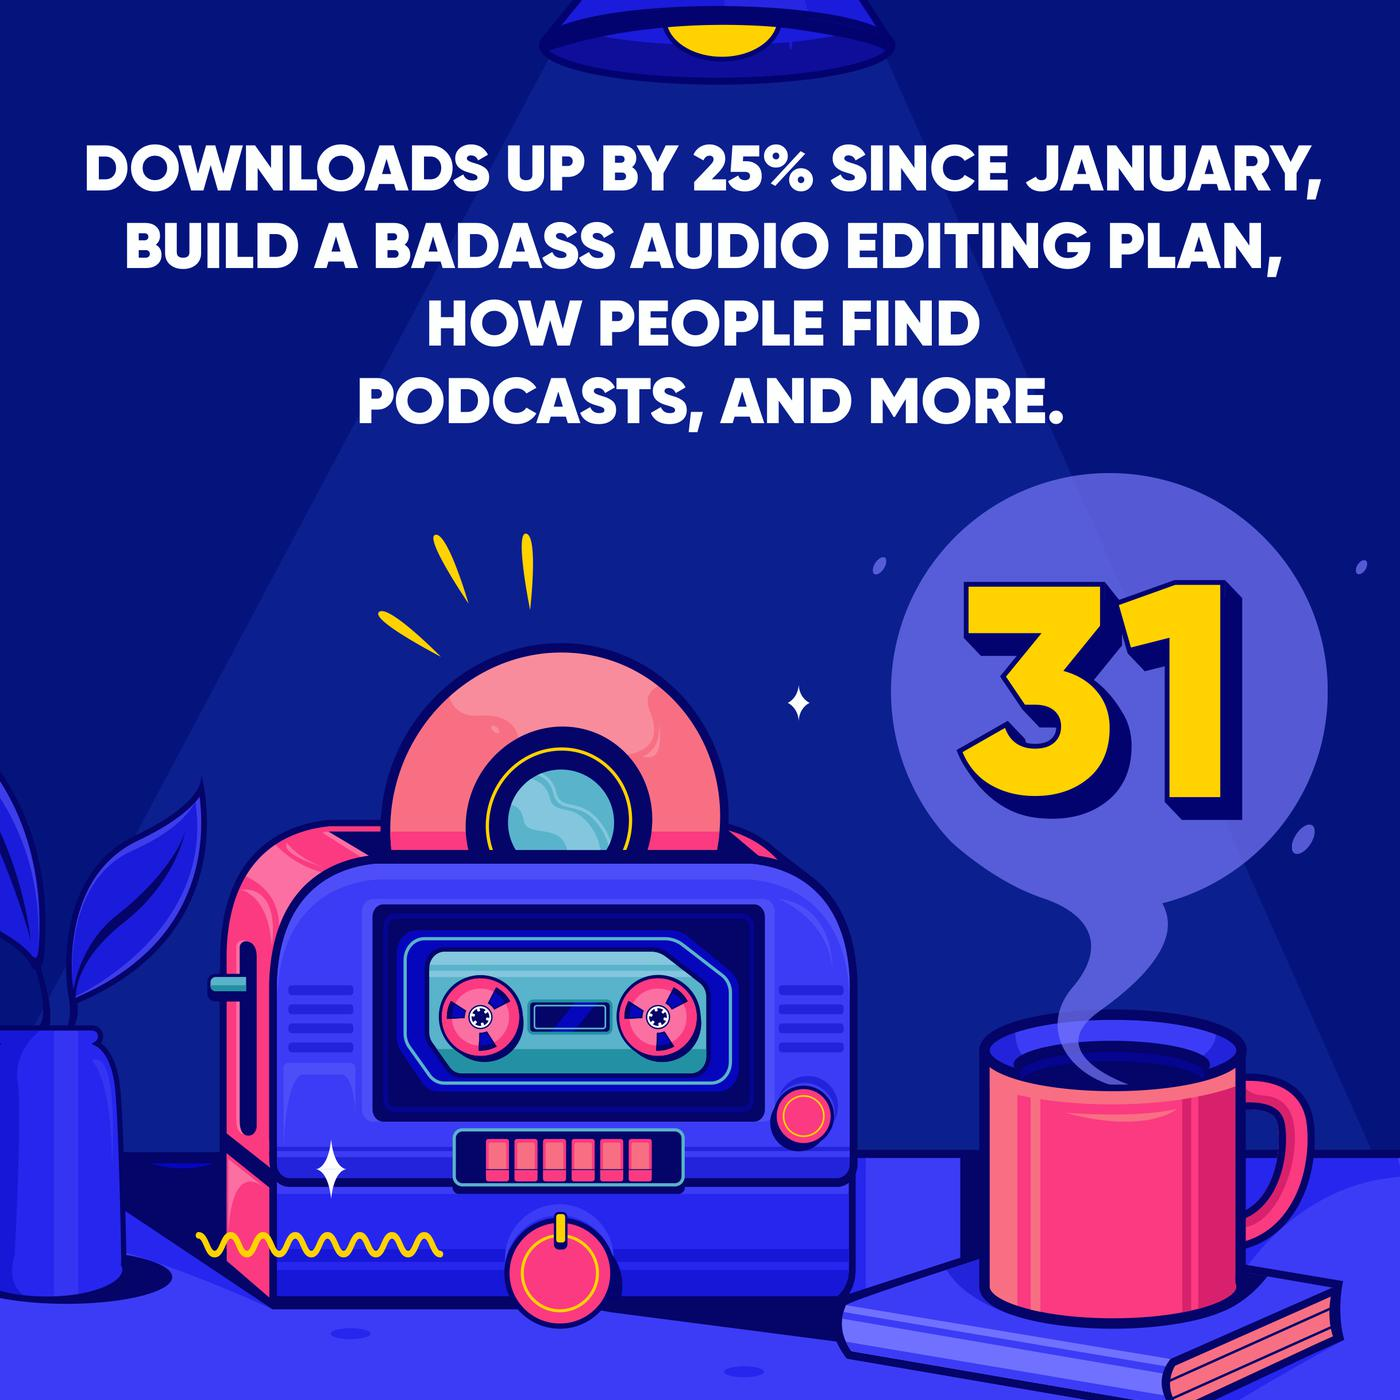 Downloads up by 25% Since January, Build a Badass Audio Editing Plan, how People find Podcasts, and More.